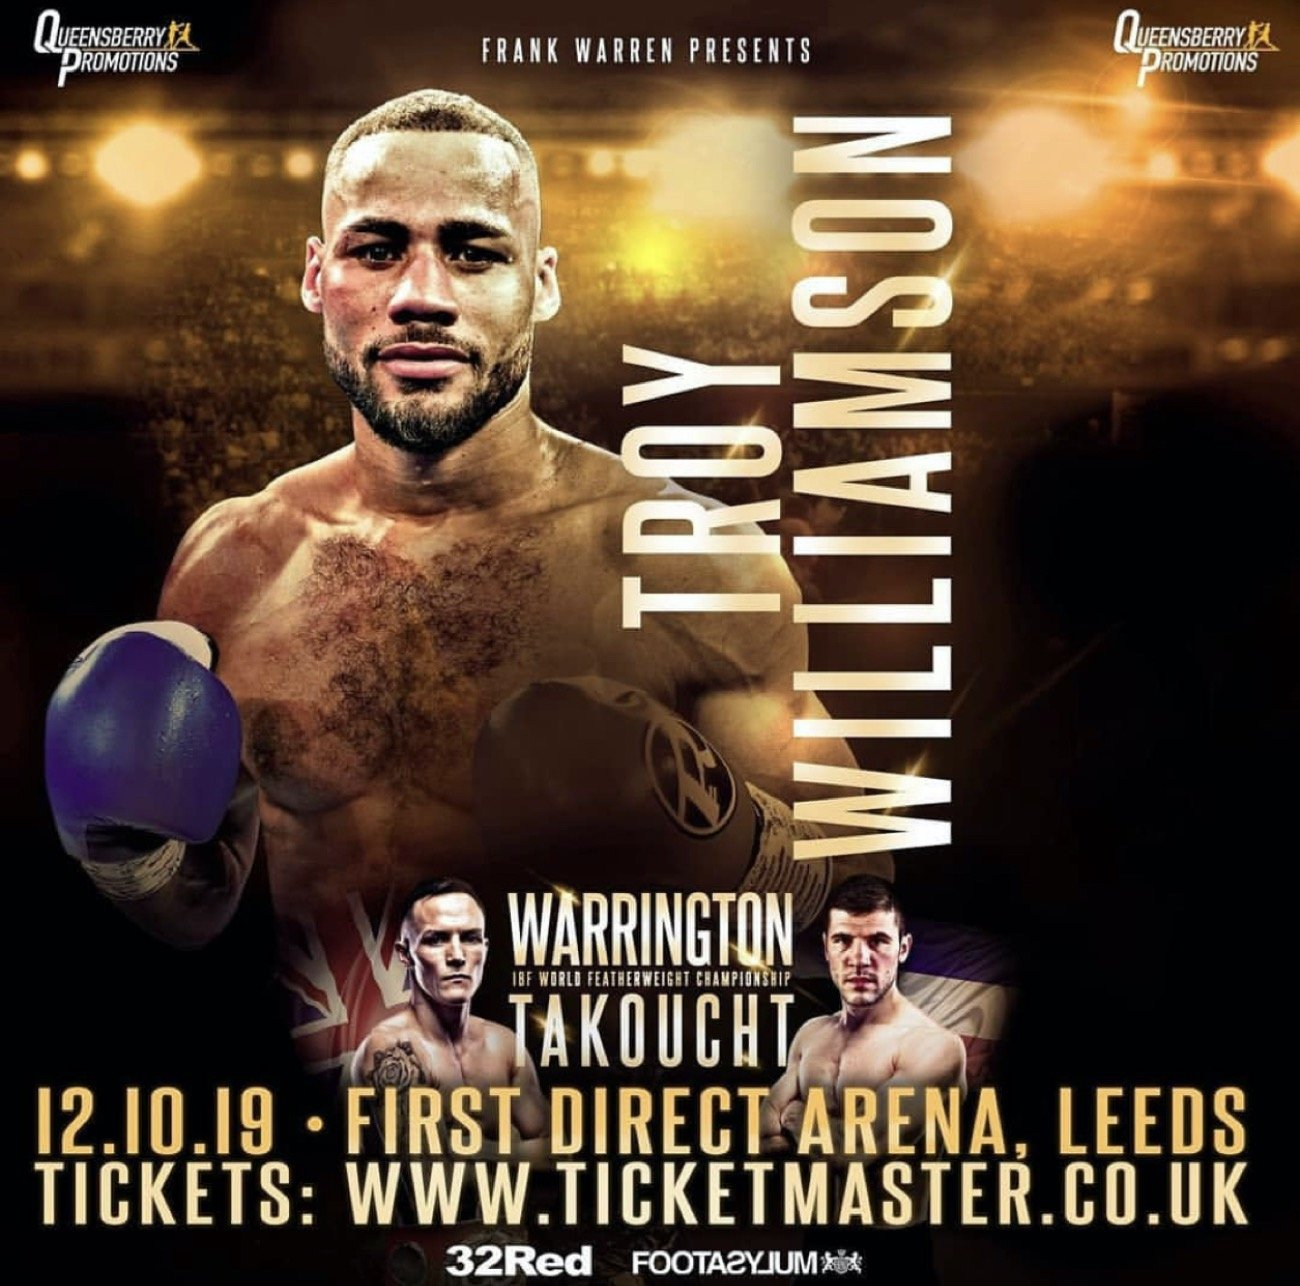 Troy Williamson - TROY WILLIAMSON insists that winning his first professional title this weekend is the springboard to future super-fights.